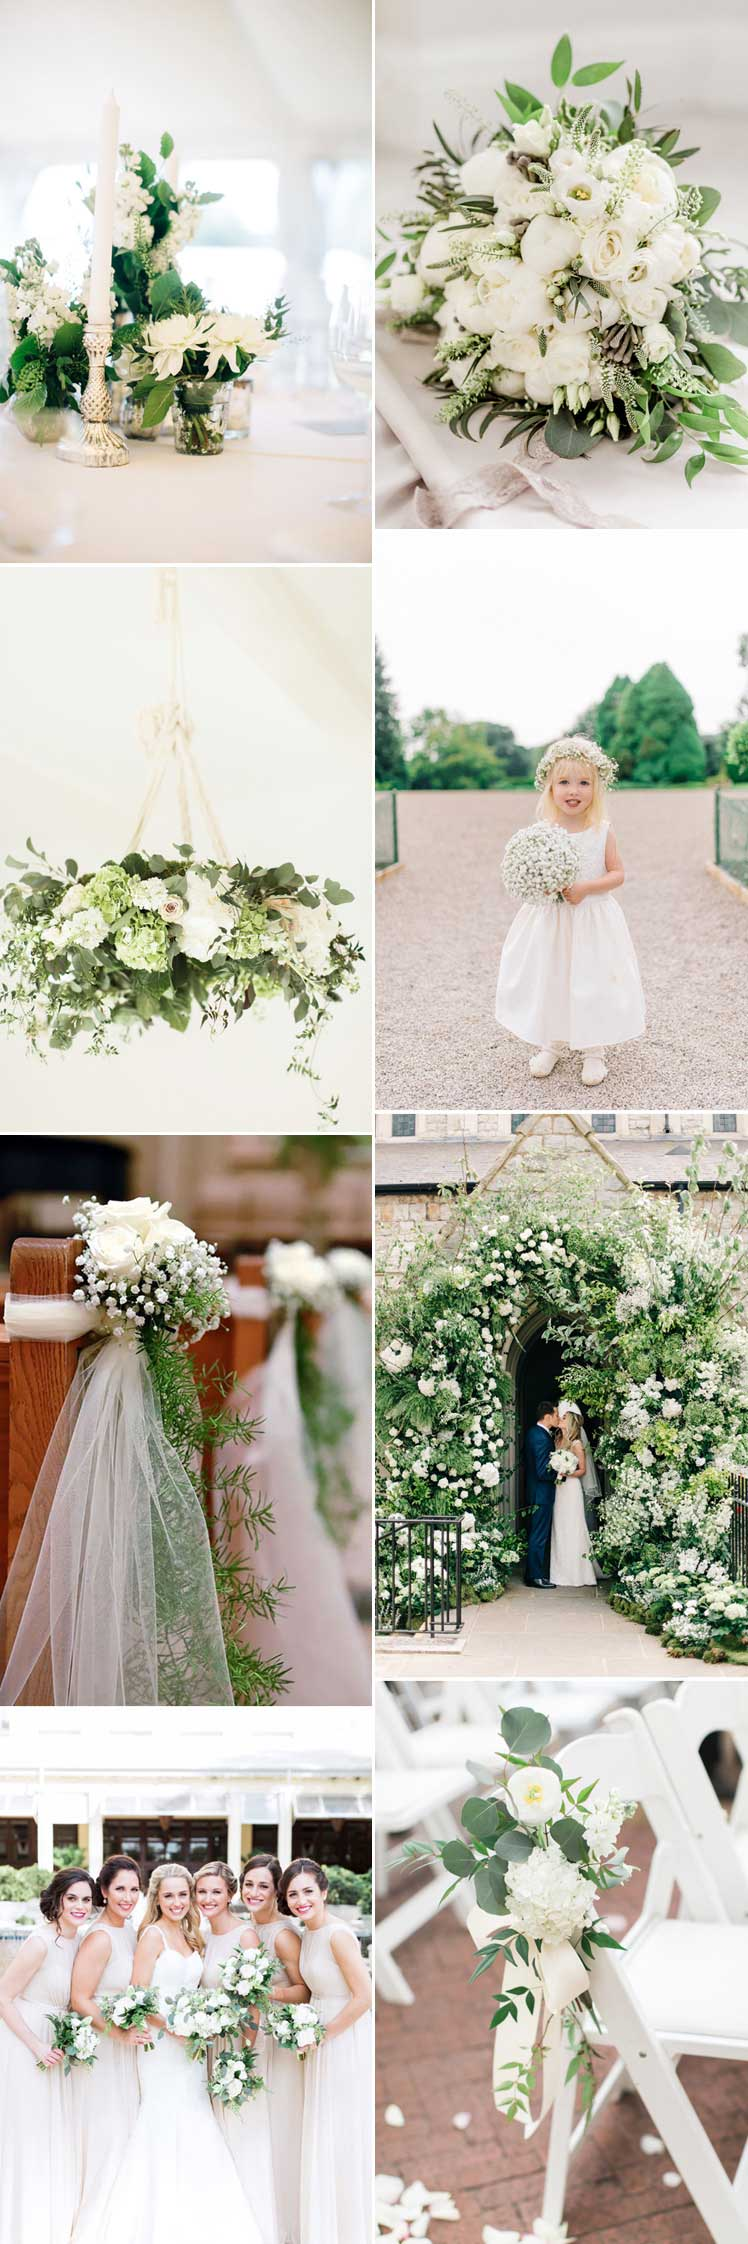 White flower ideas for a spring wedding